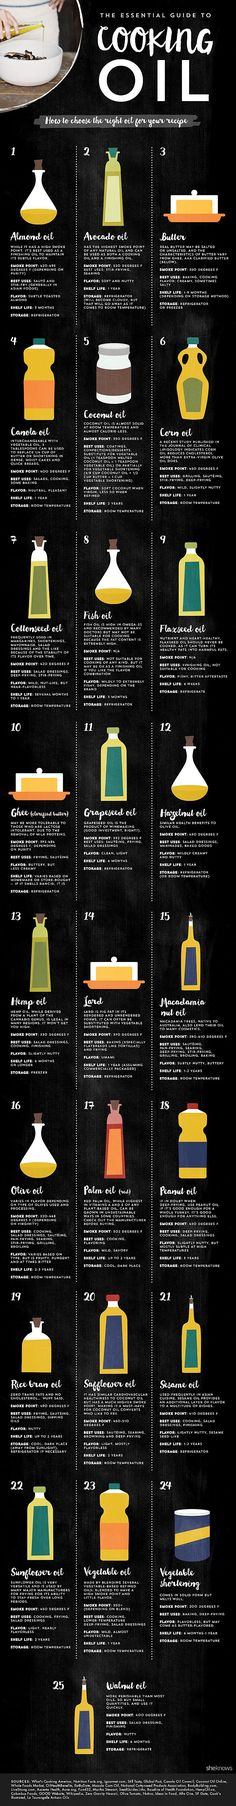 cooking oil infographic